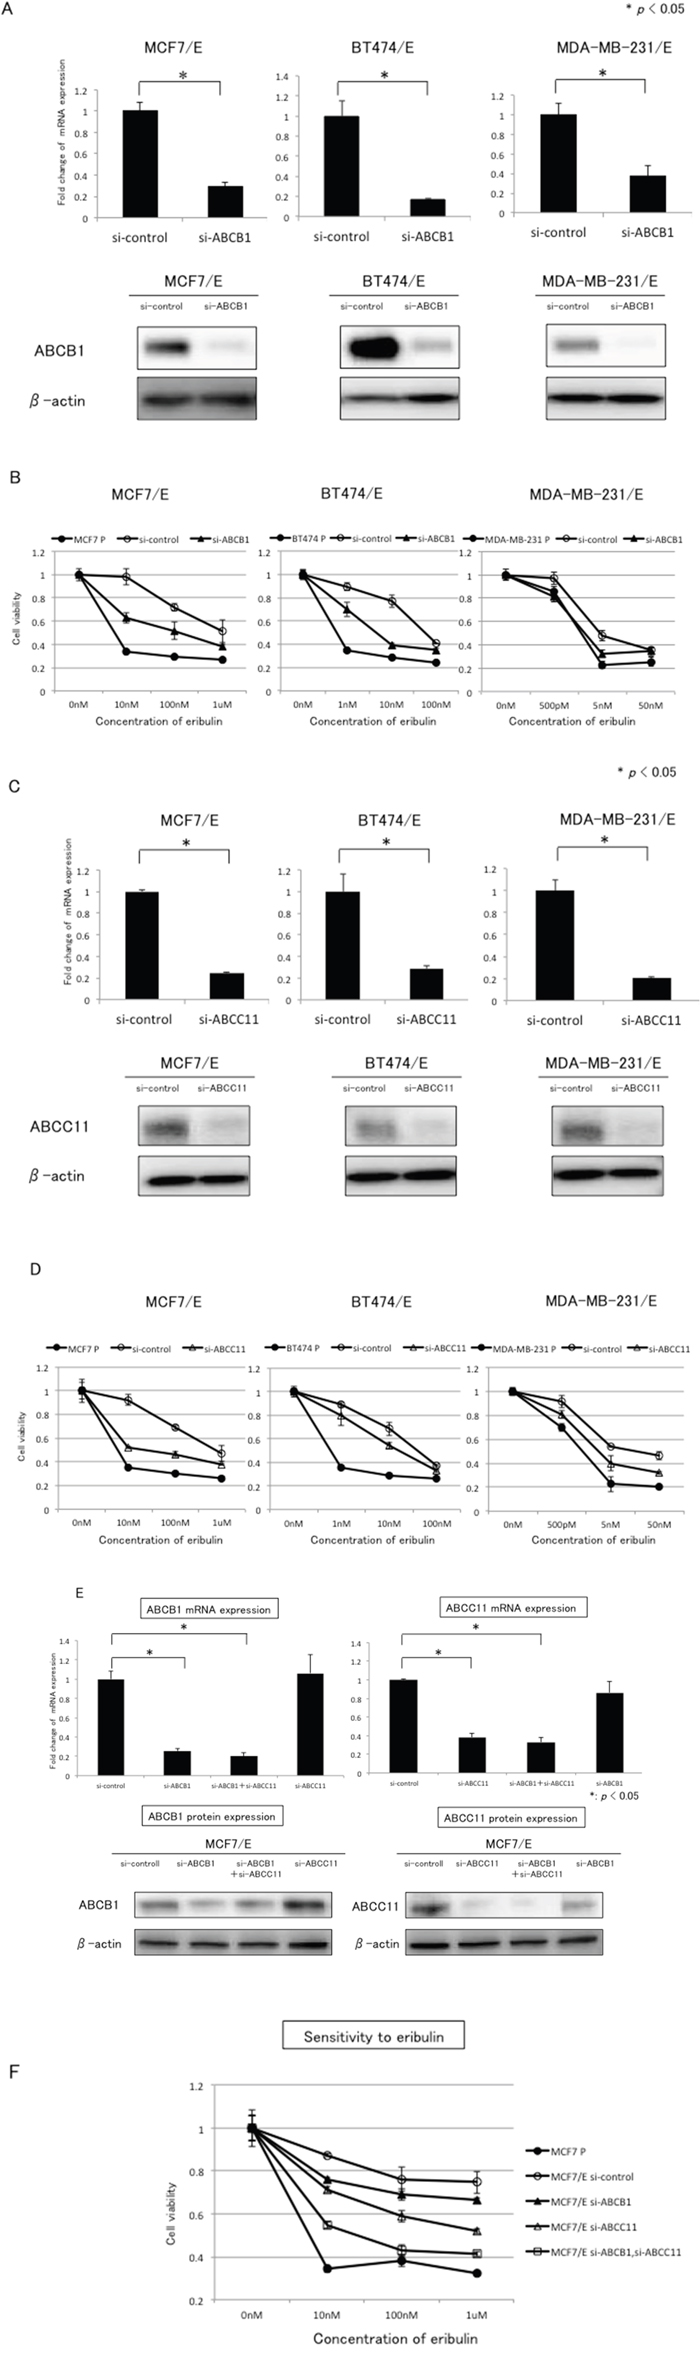 Effects of ABCB1 or ABCC11 knockdown in eribulin-resistant breast cancer cells.